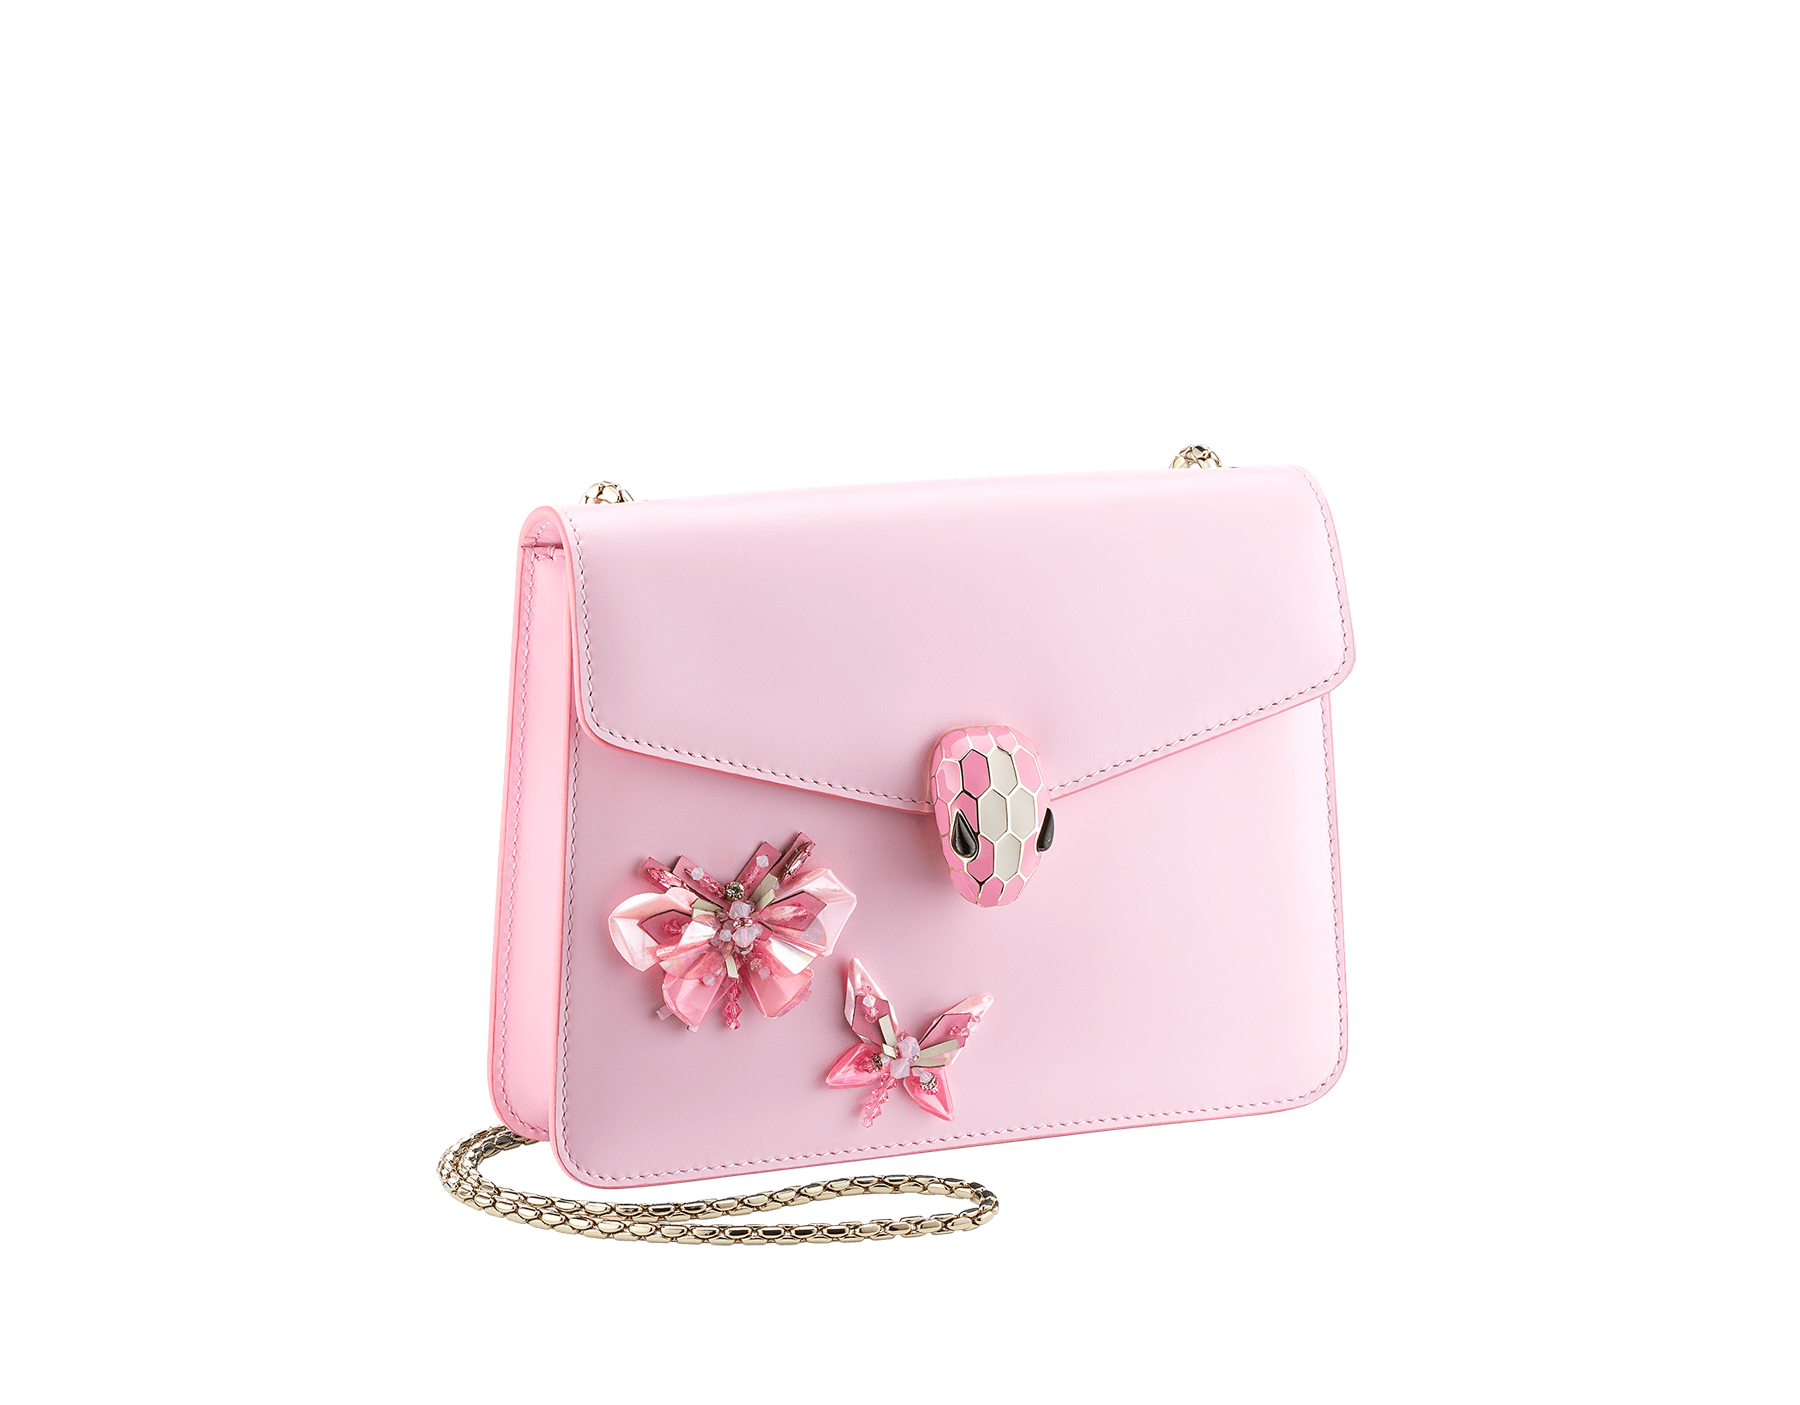 """Serpenti Forever"" crossbody bag in rosa di francia calf leather with two rosa di francia butterflies embroidered. Iconic snakehead closure in light gold plated brass enriched with rosa di francia and white agate enamel and black onyx eyes. 289239 image 2"